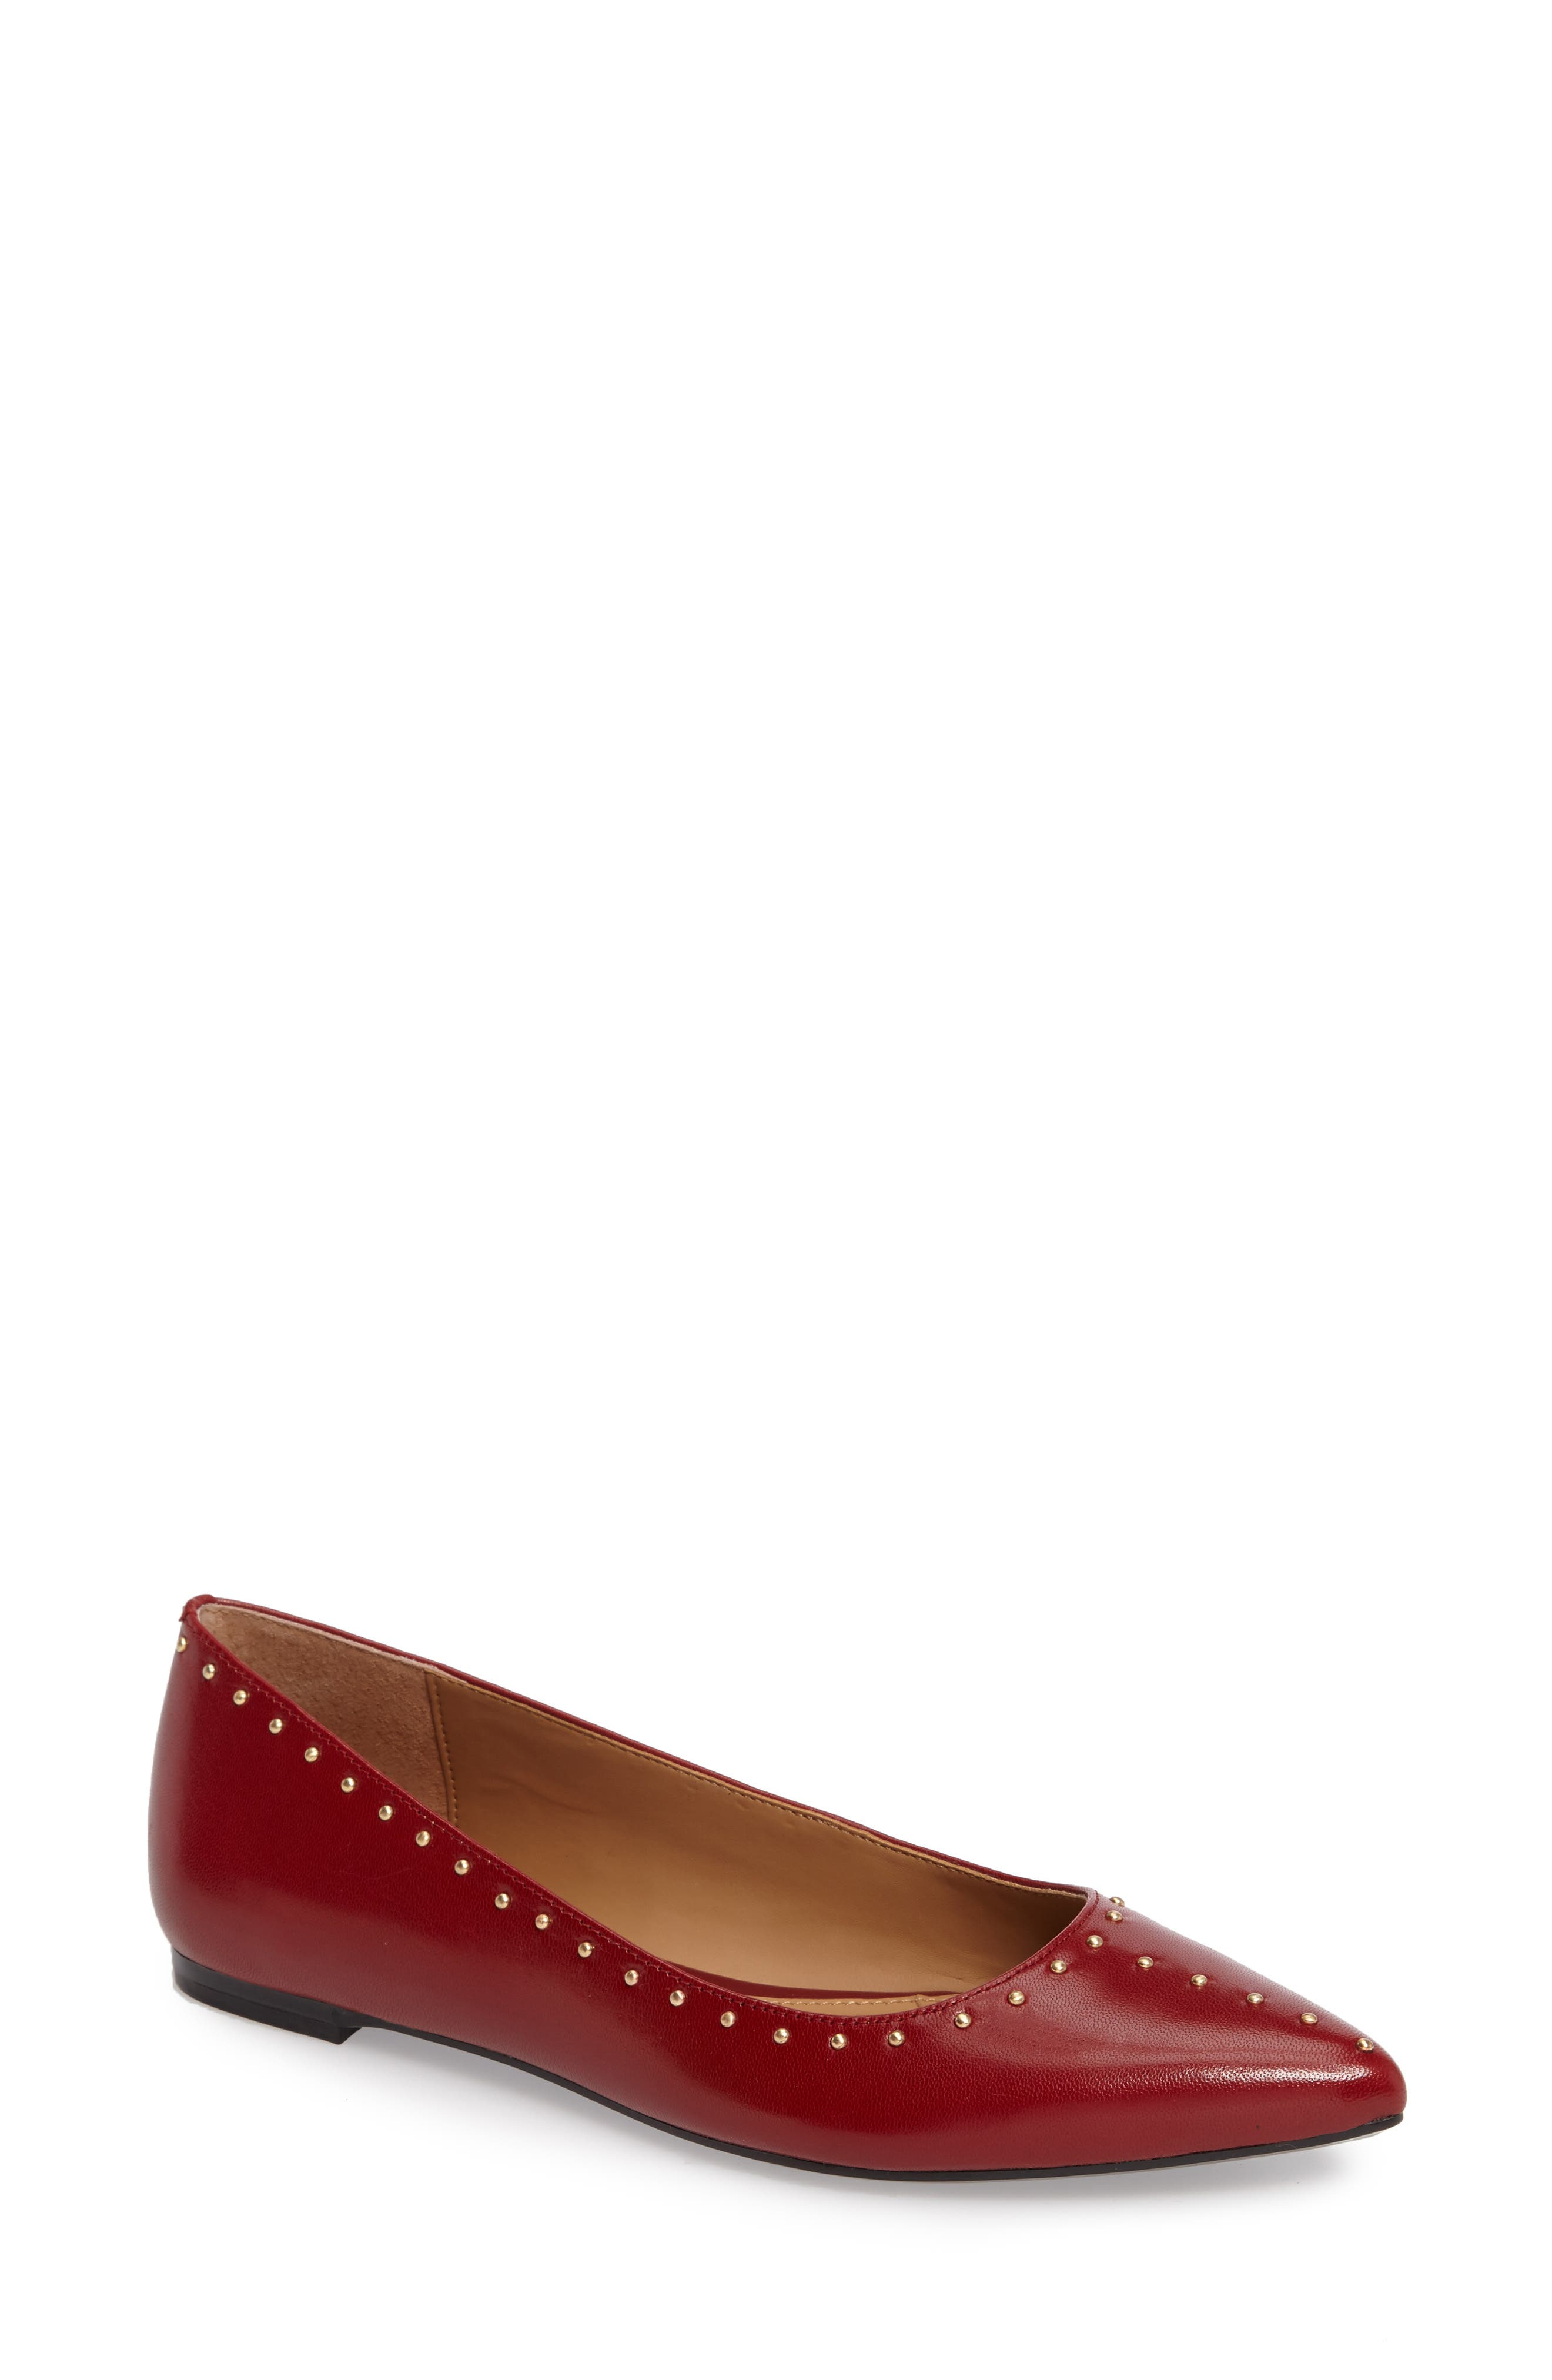 Alternate Image 1 Selected - Calvin Klein Genie Pointy Toe Flat (Women)